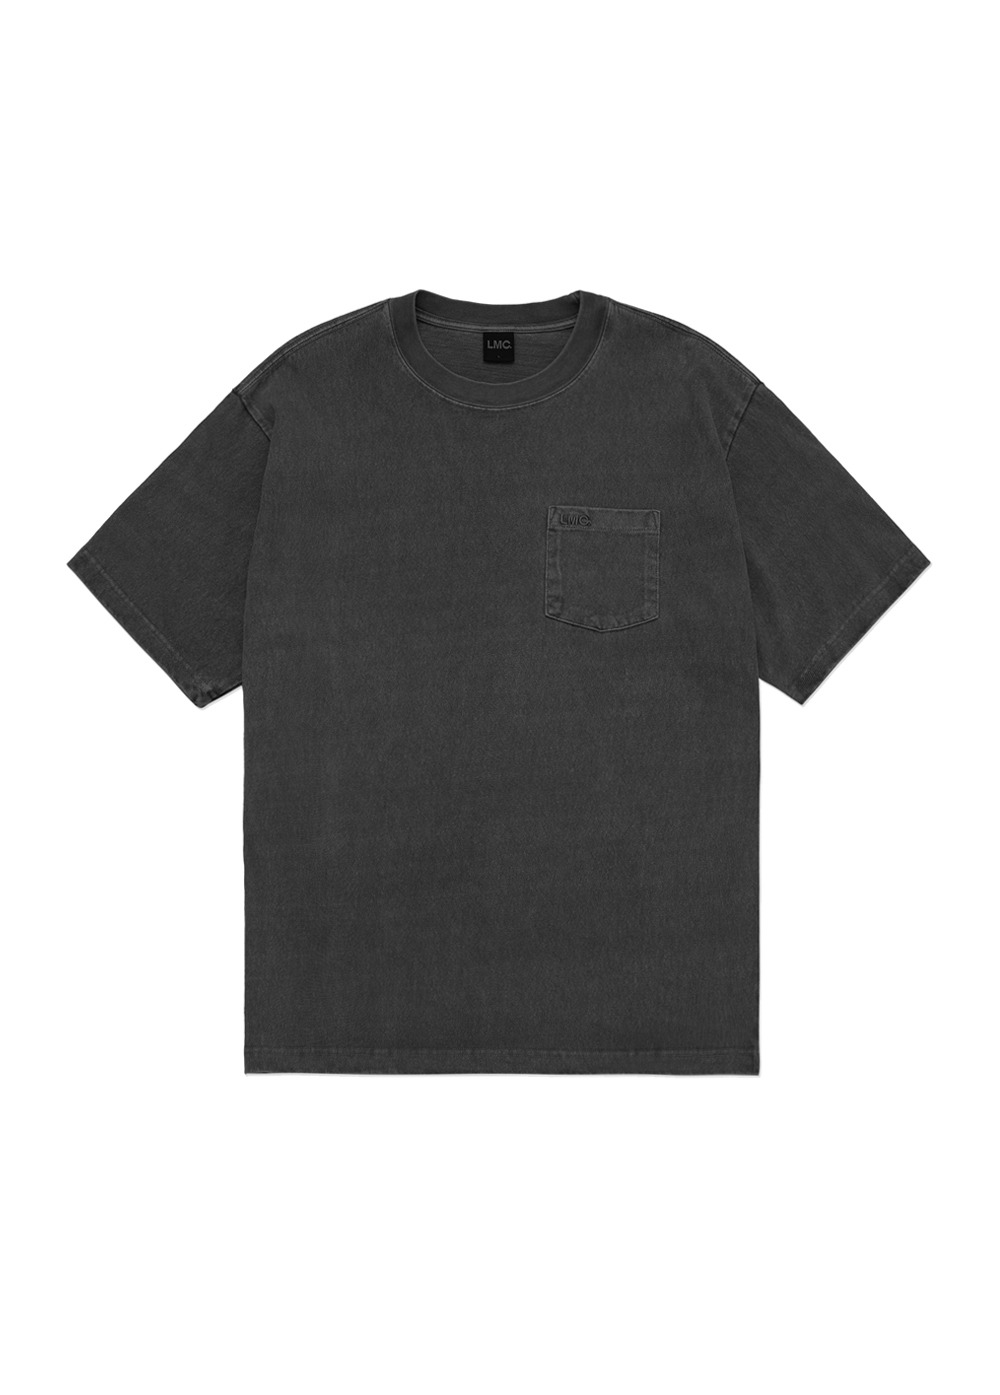 LMC OVERDYED OG POCKET TEE black